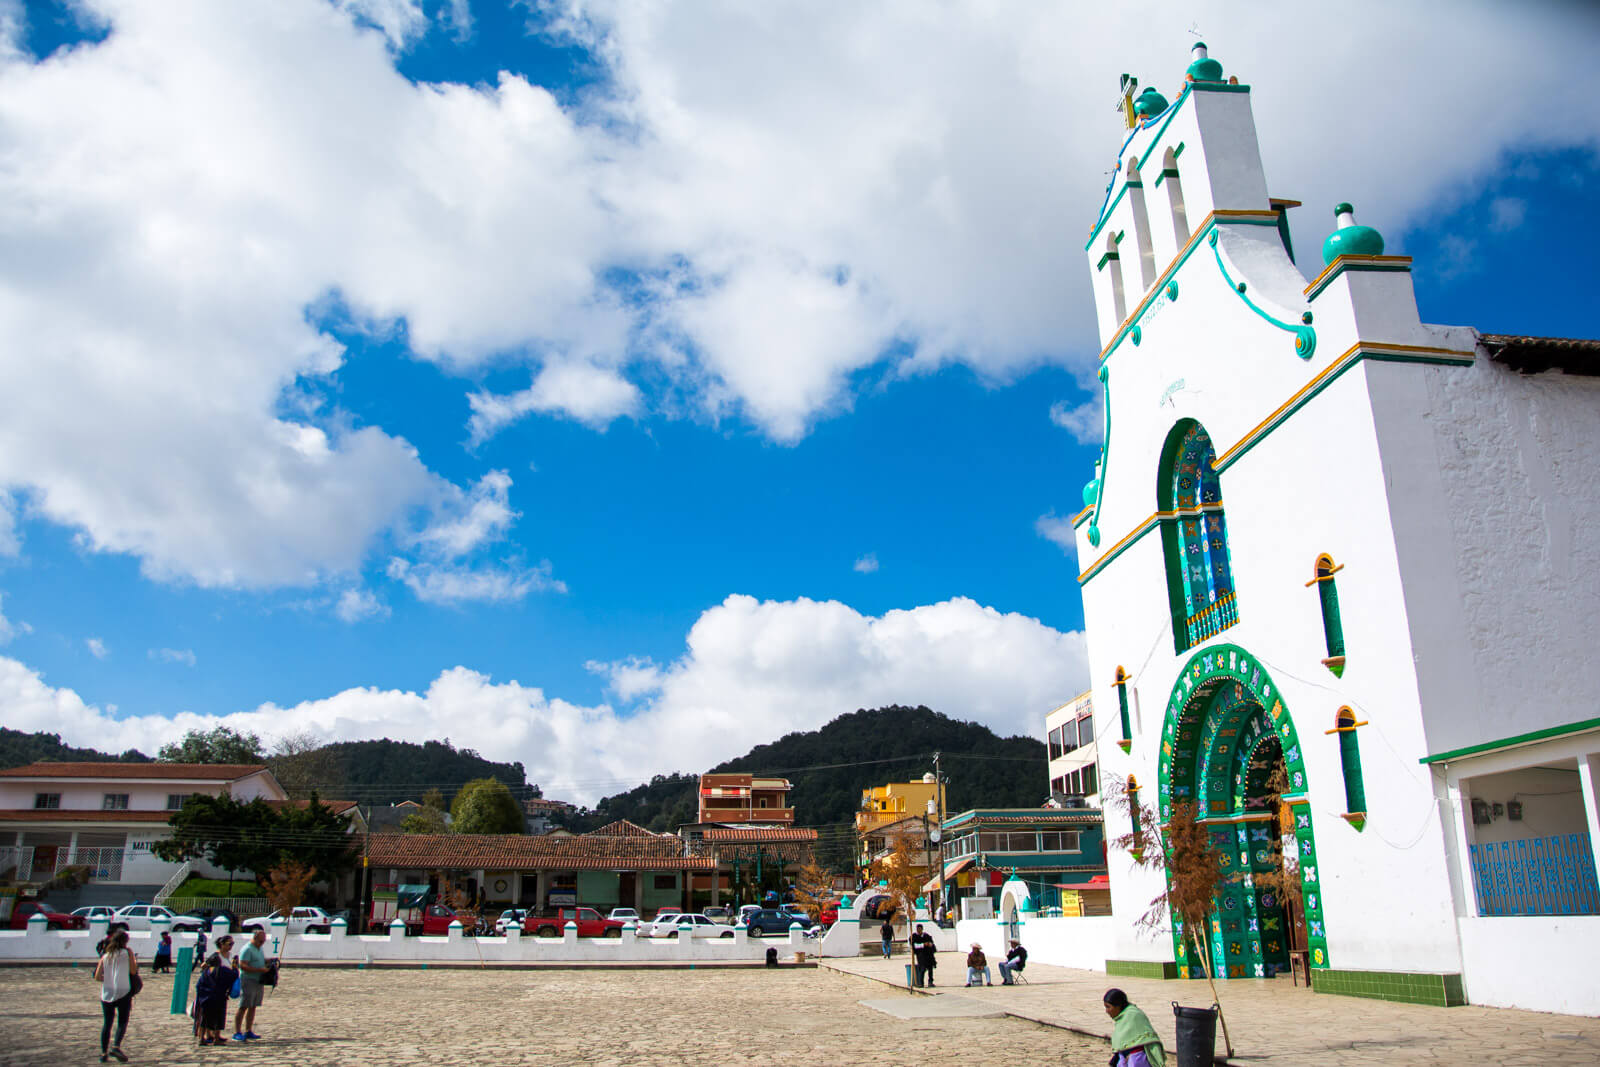 Things to do in San Cristobal de las Casas